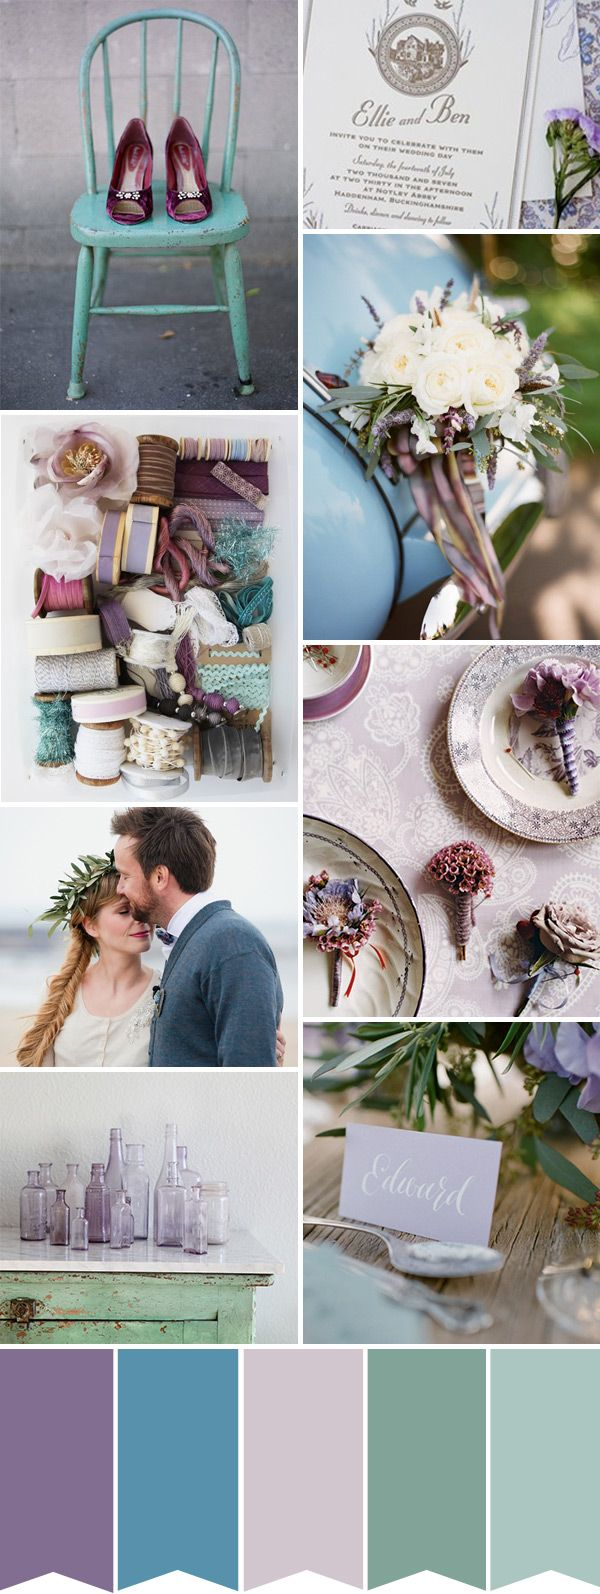 Purple and Blue Wedding Inspiration | onefabday.com  Really like all the colors in this palette.